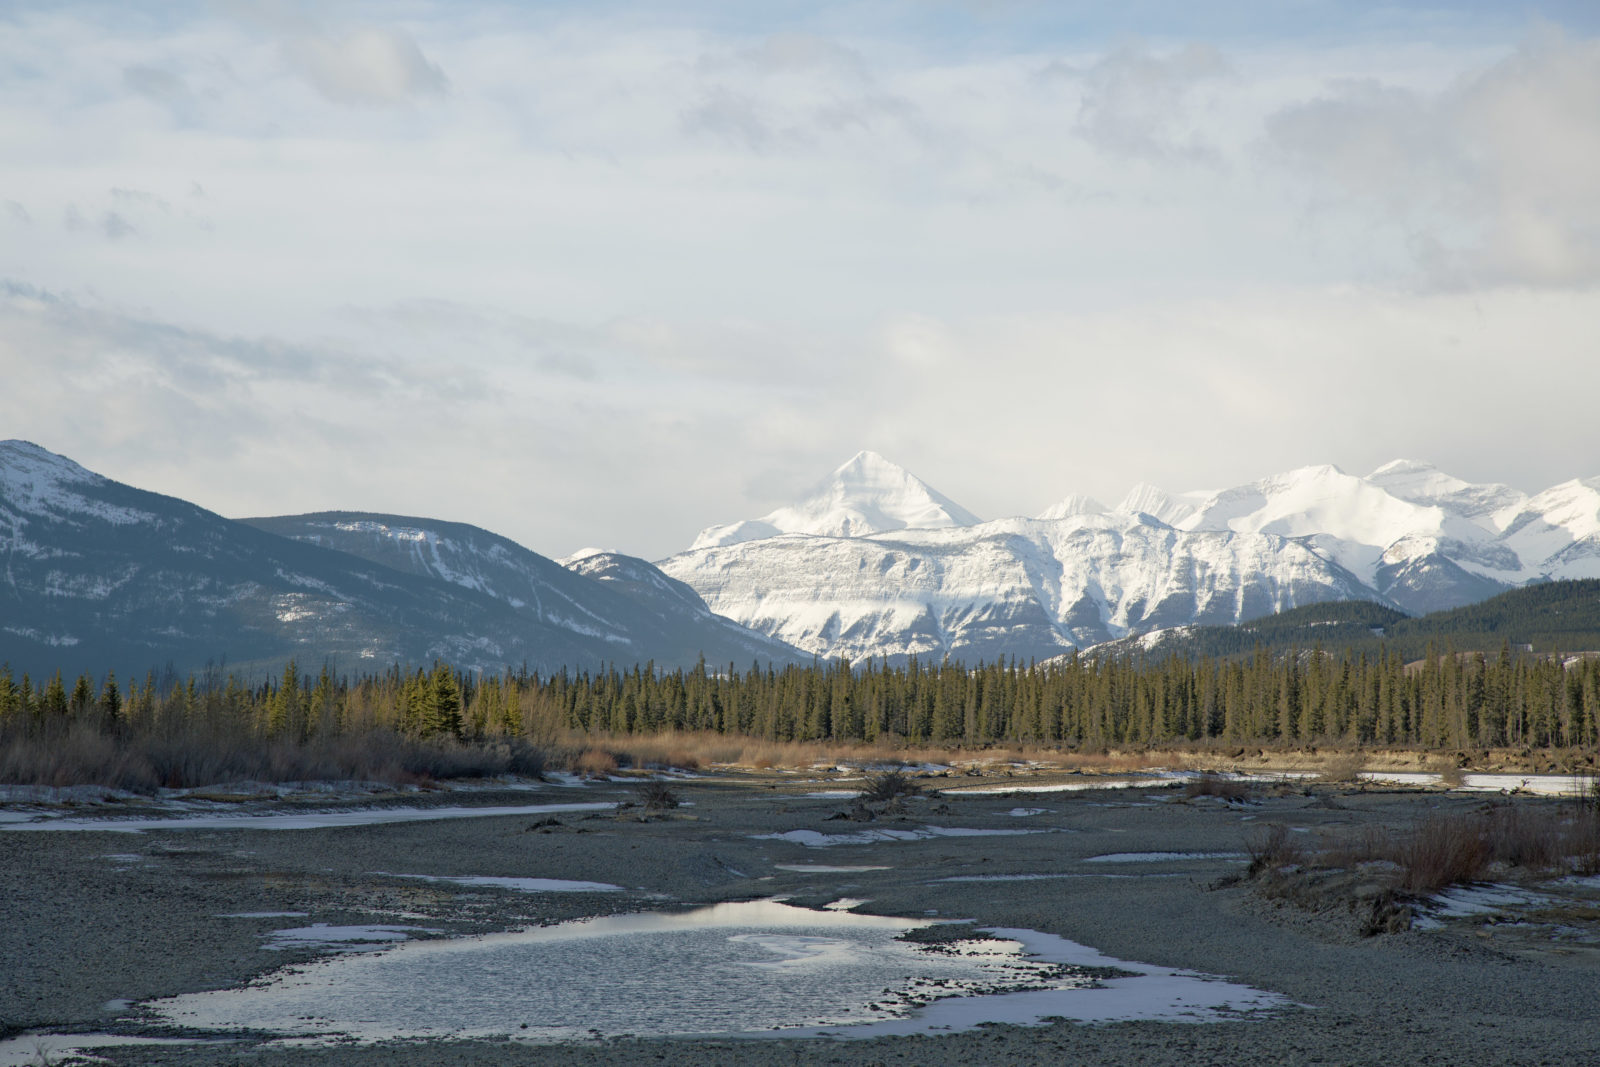 Morning sun in the Athabasca valley